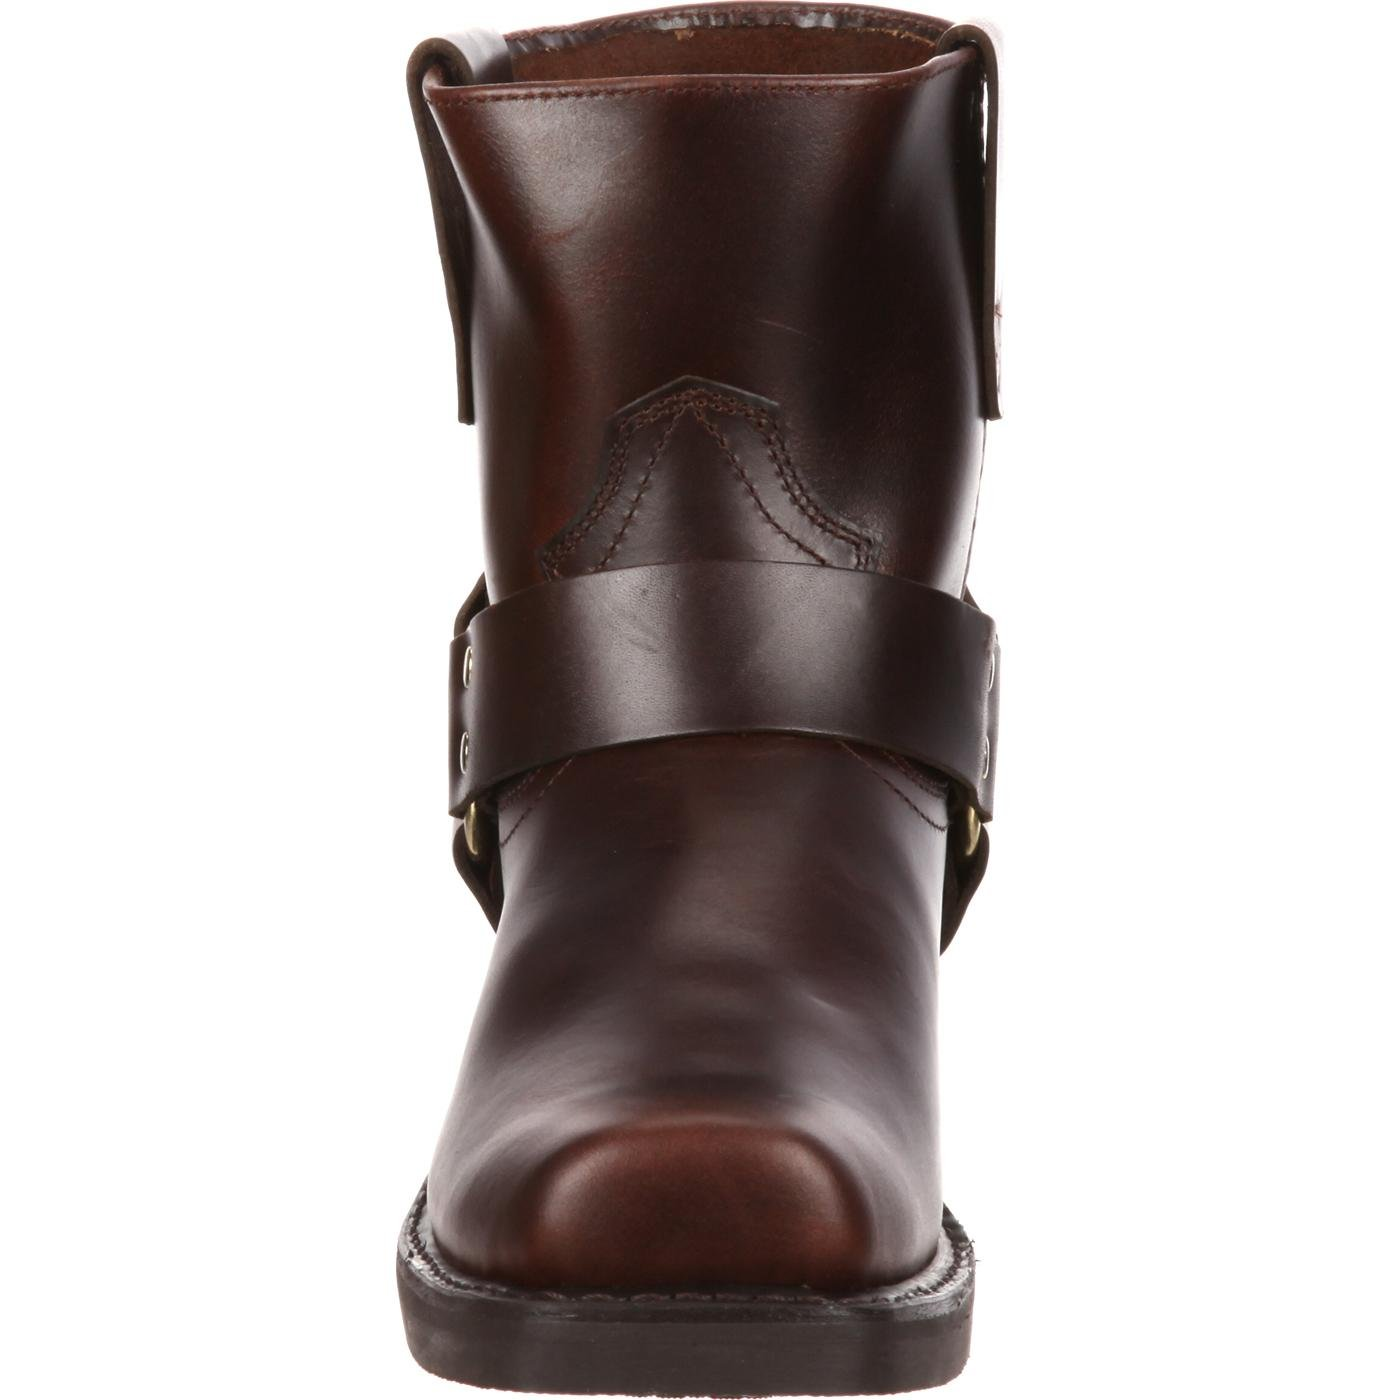 Men's ankle boots are practical for fall and winter. When the weather is chilly, a pair of men's ankle boots keep your feet warm and comfy. From chukka boots and Chelsea boots to waterproof and leather boots, our outstanding collection of men's ankle boots offers everything you could want.